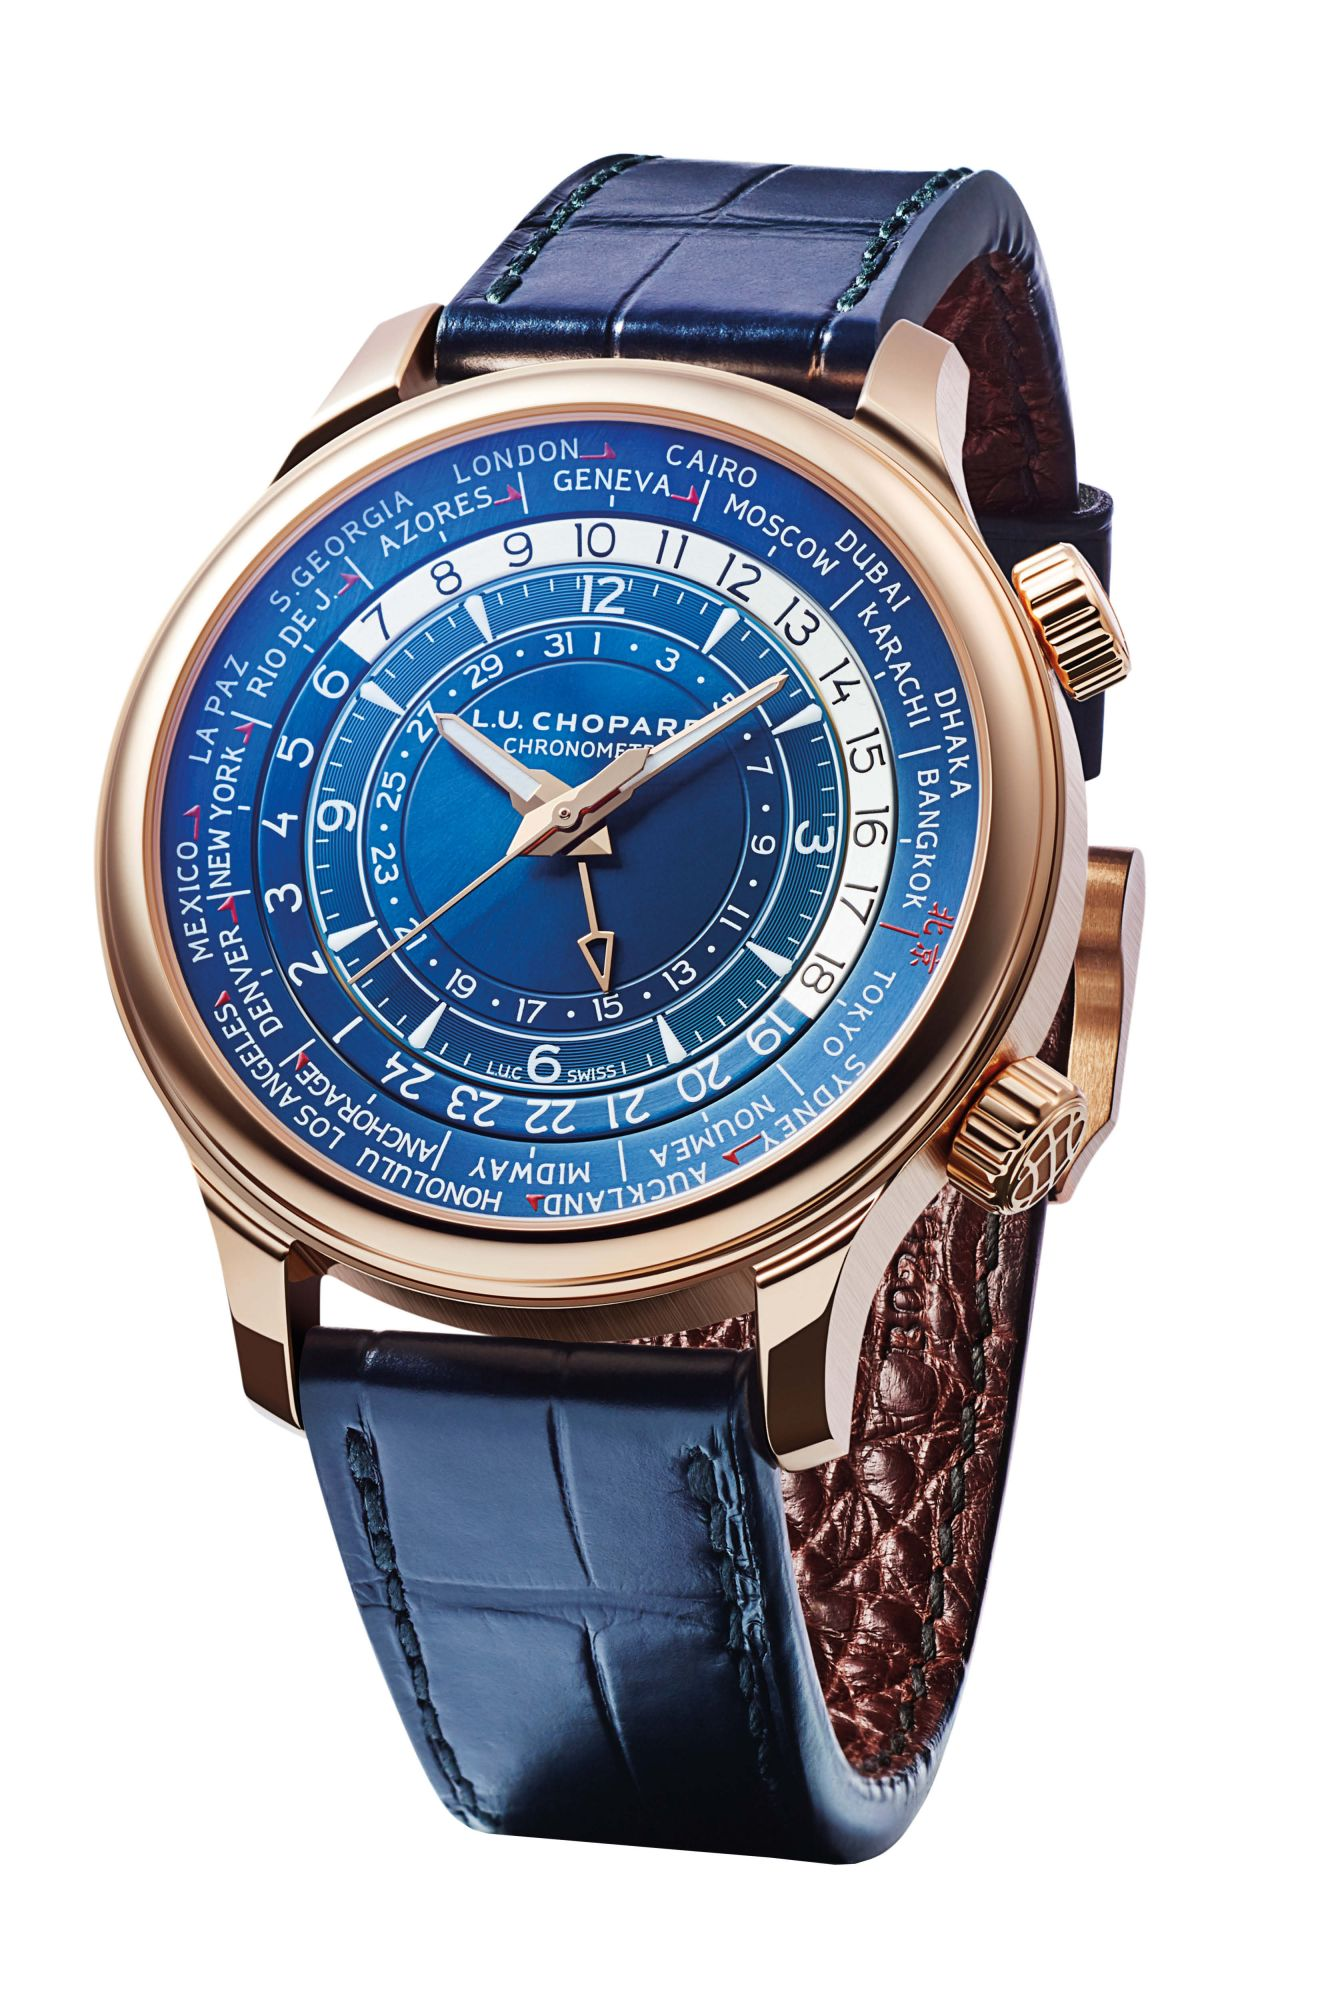 9 Of The Best World-Time Watches | Singapore Tatler